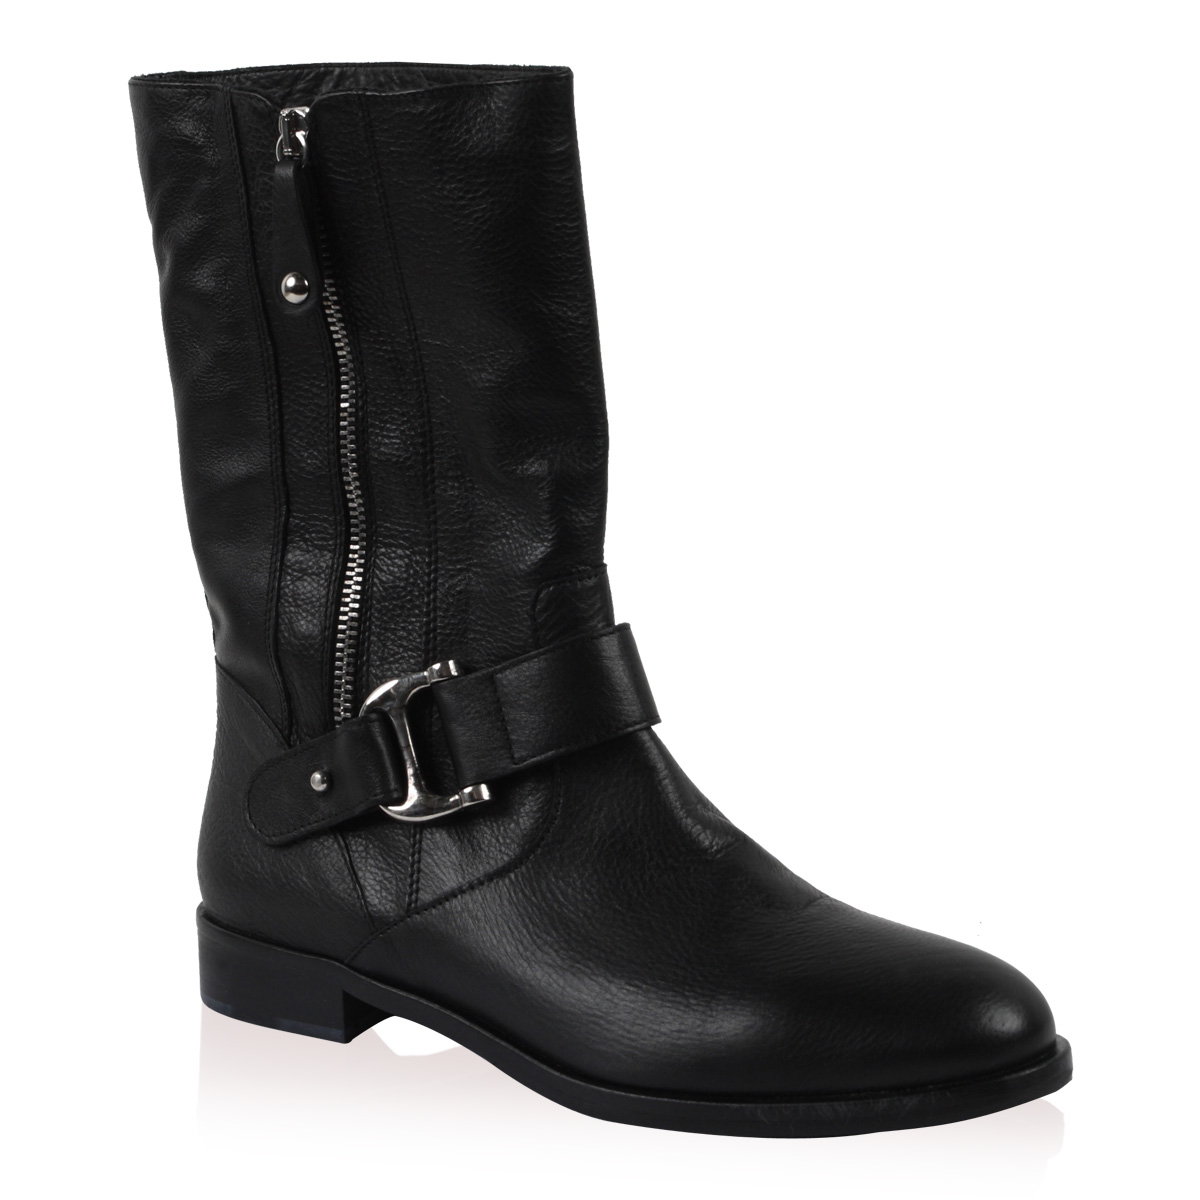 PIED-A-TERRE-LADIES-OKELLY-WOMENS-BLACK-LOW-HEEL-LEATHER-ANKLE-BOOTS-SIZE-3-8-UK